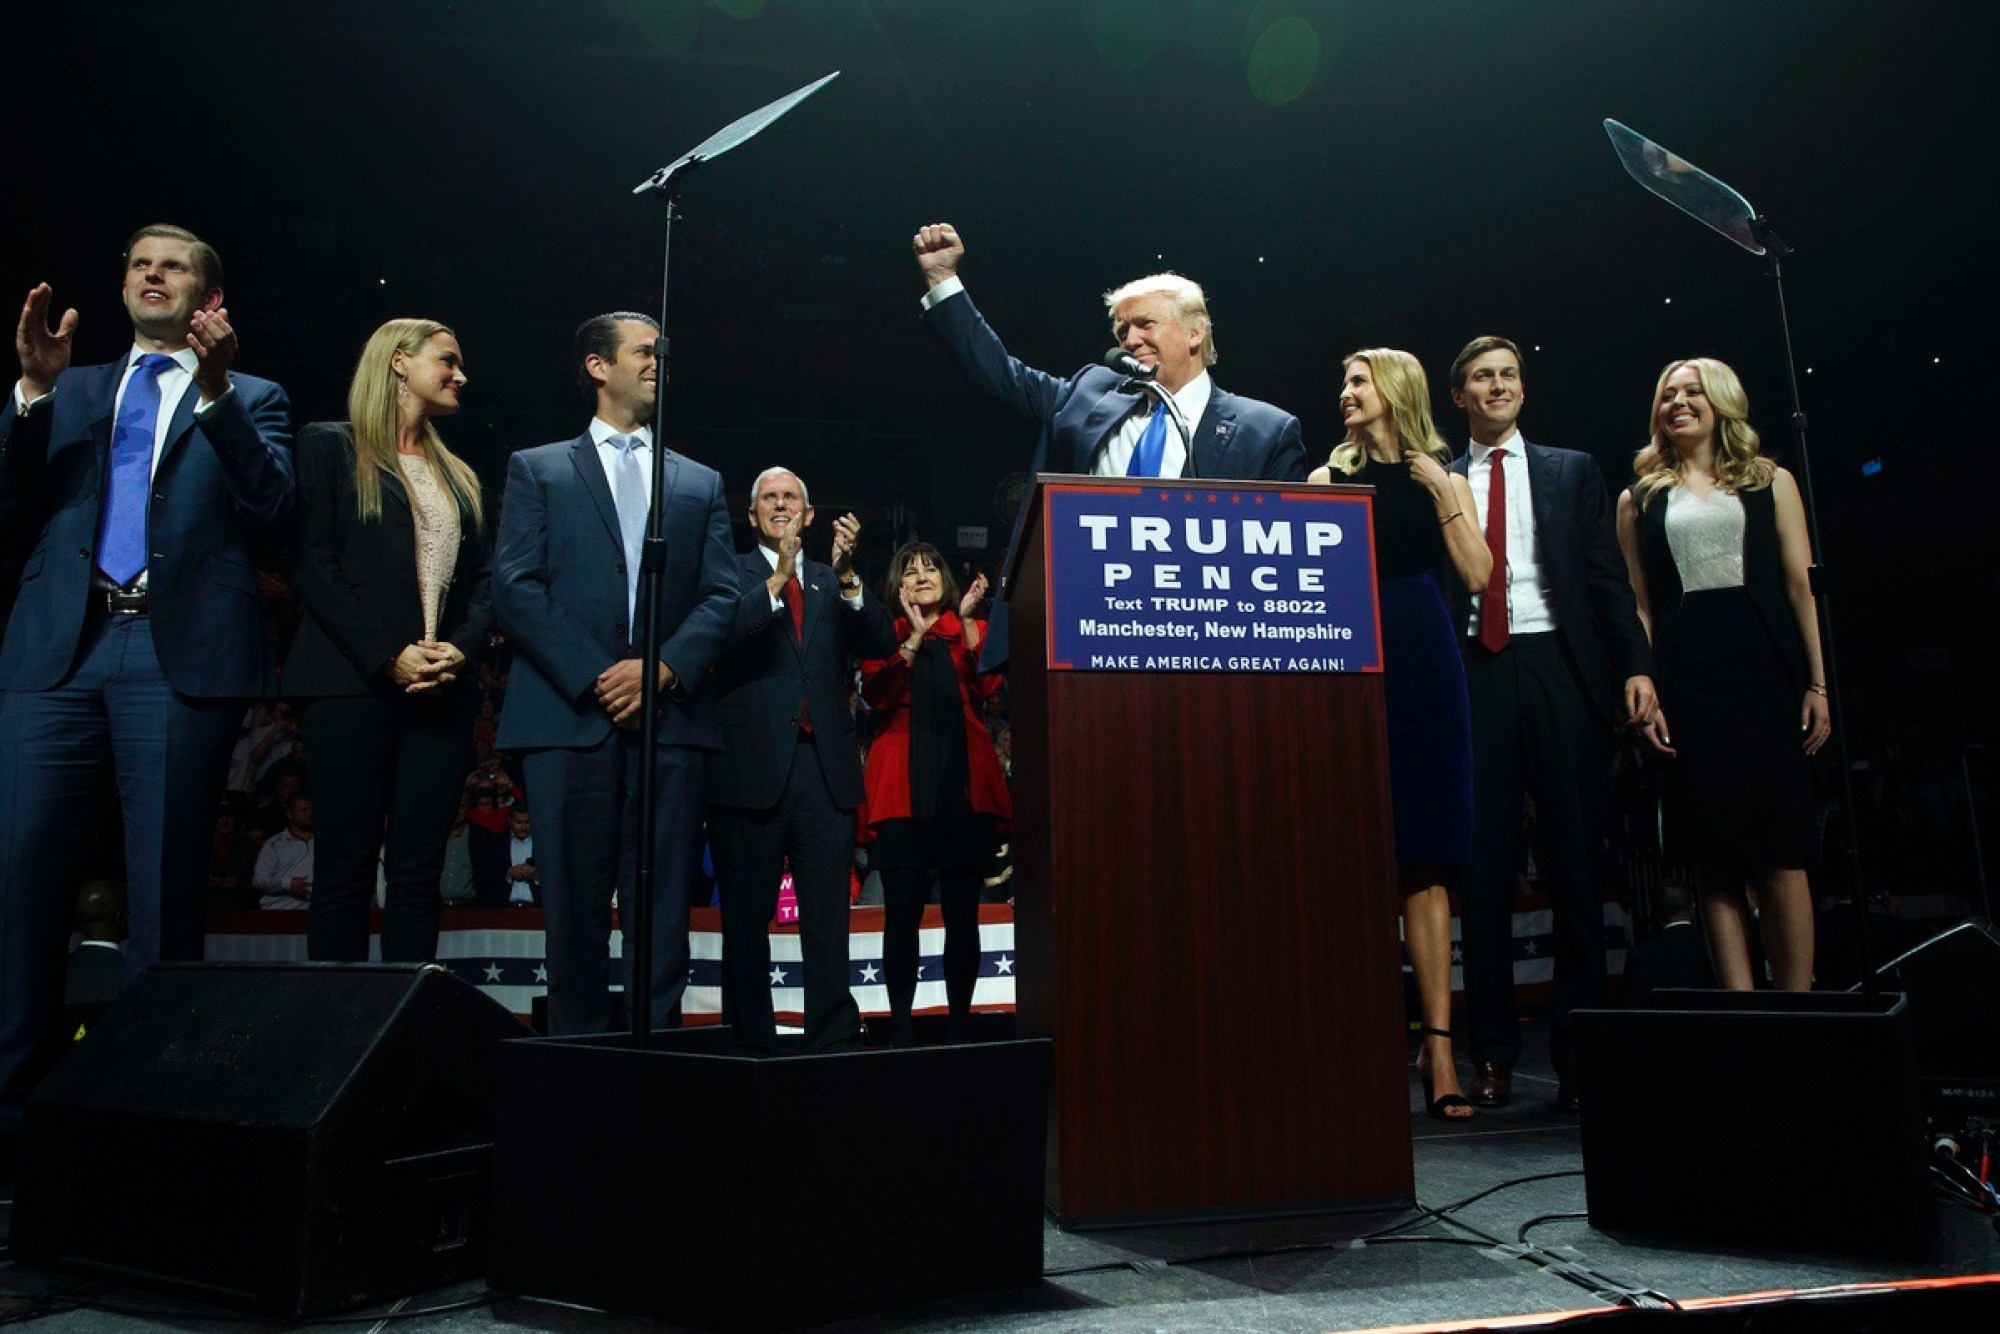 Donald Trump arrives to speak during a campaign rally, Monday, Nov. 7, 2016, in Manchester, N.H. From left, Eric Trump, Vanessa Trump, Donald Trump Jr., Mike Pence, Karen Pence, Trump, Ivanka Trump, Jared Kushner, and Tiffany Trump. (AP Photo/ Evan Vucci)